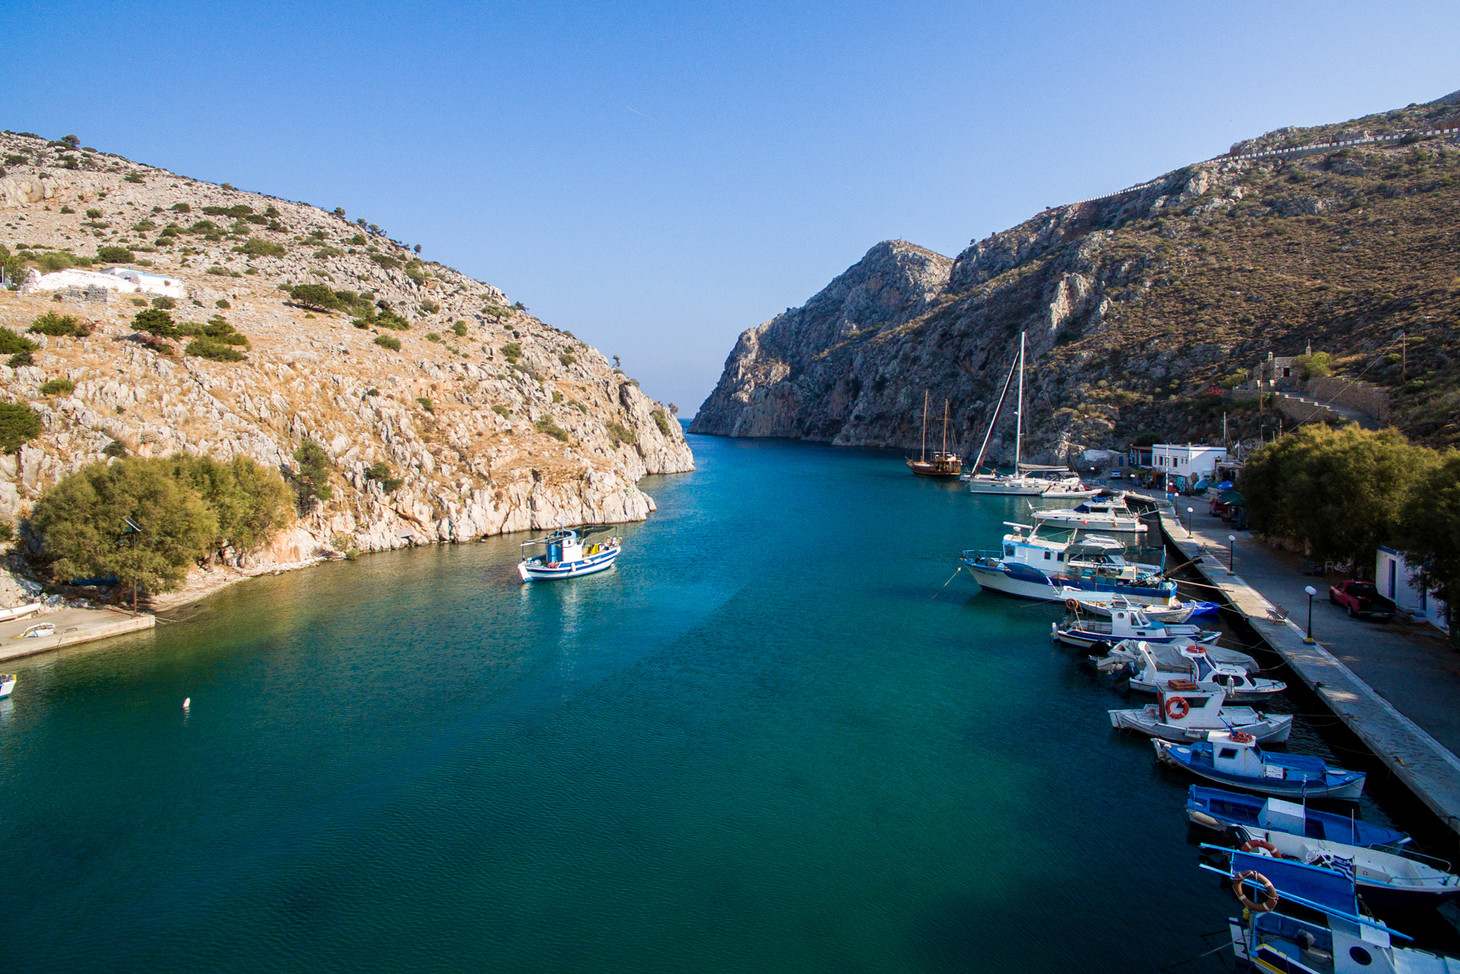 Rina Port in Vathy, Kalymnos, Greece